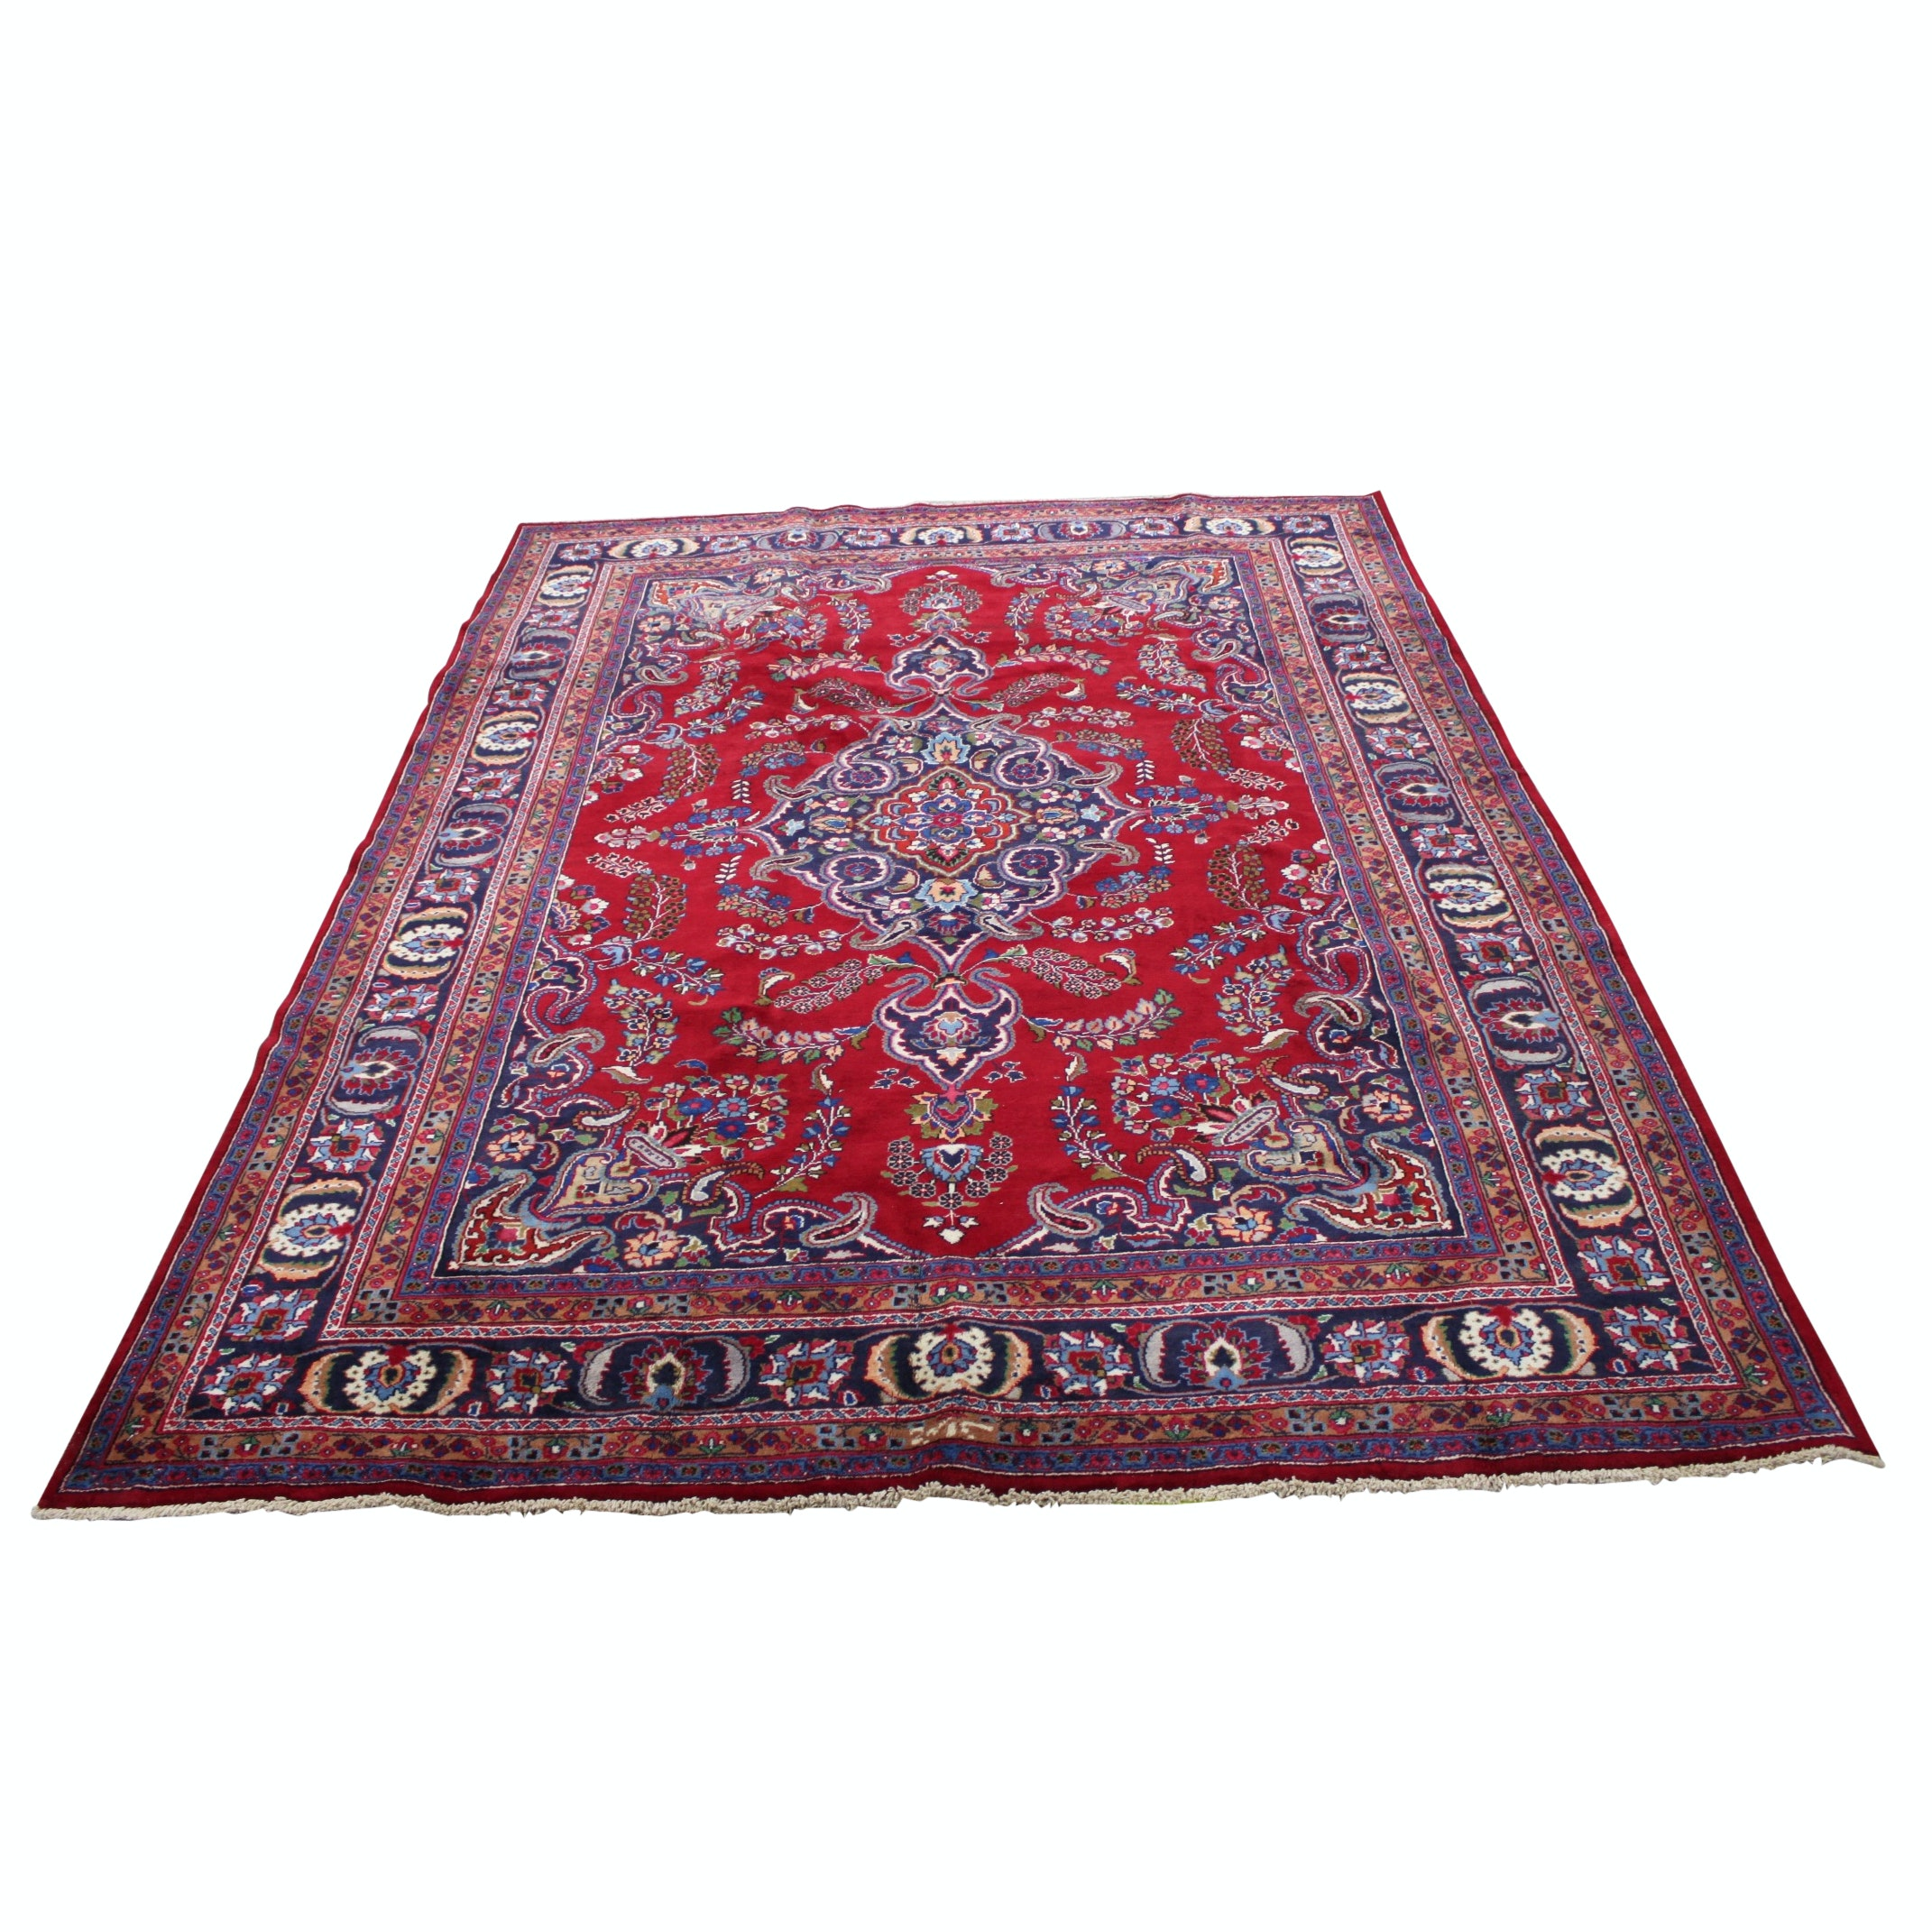 Hand-Knotted Persian Area Rug with Inscription